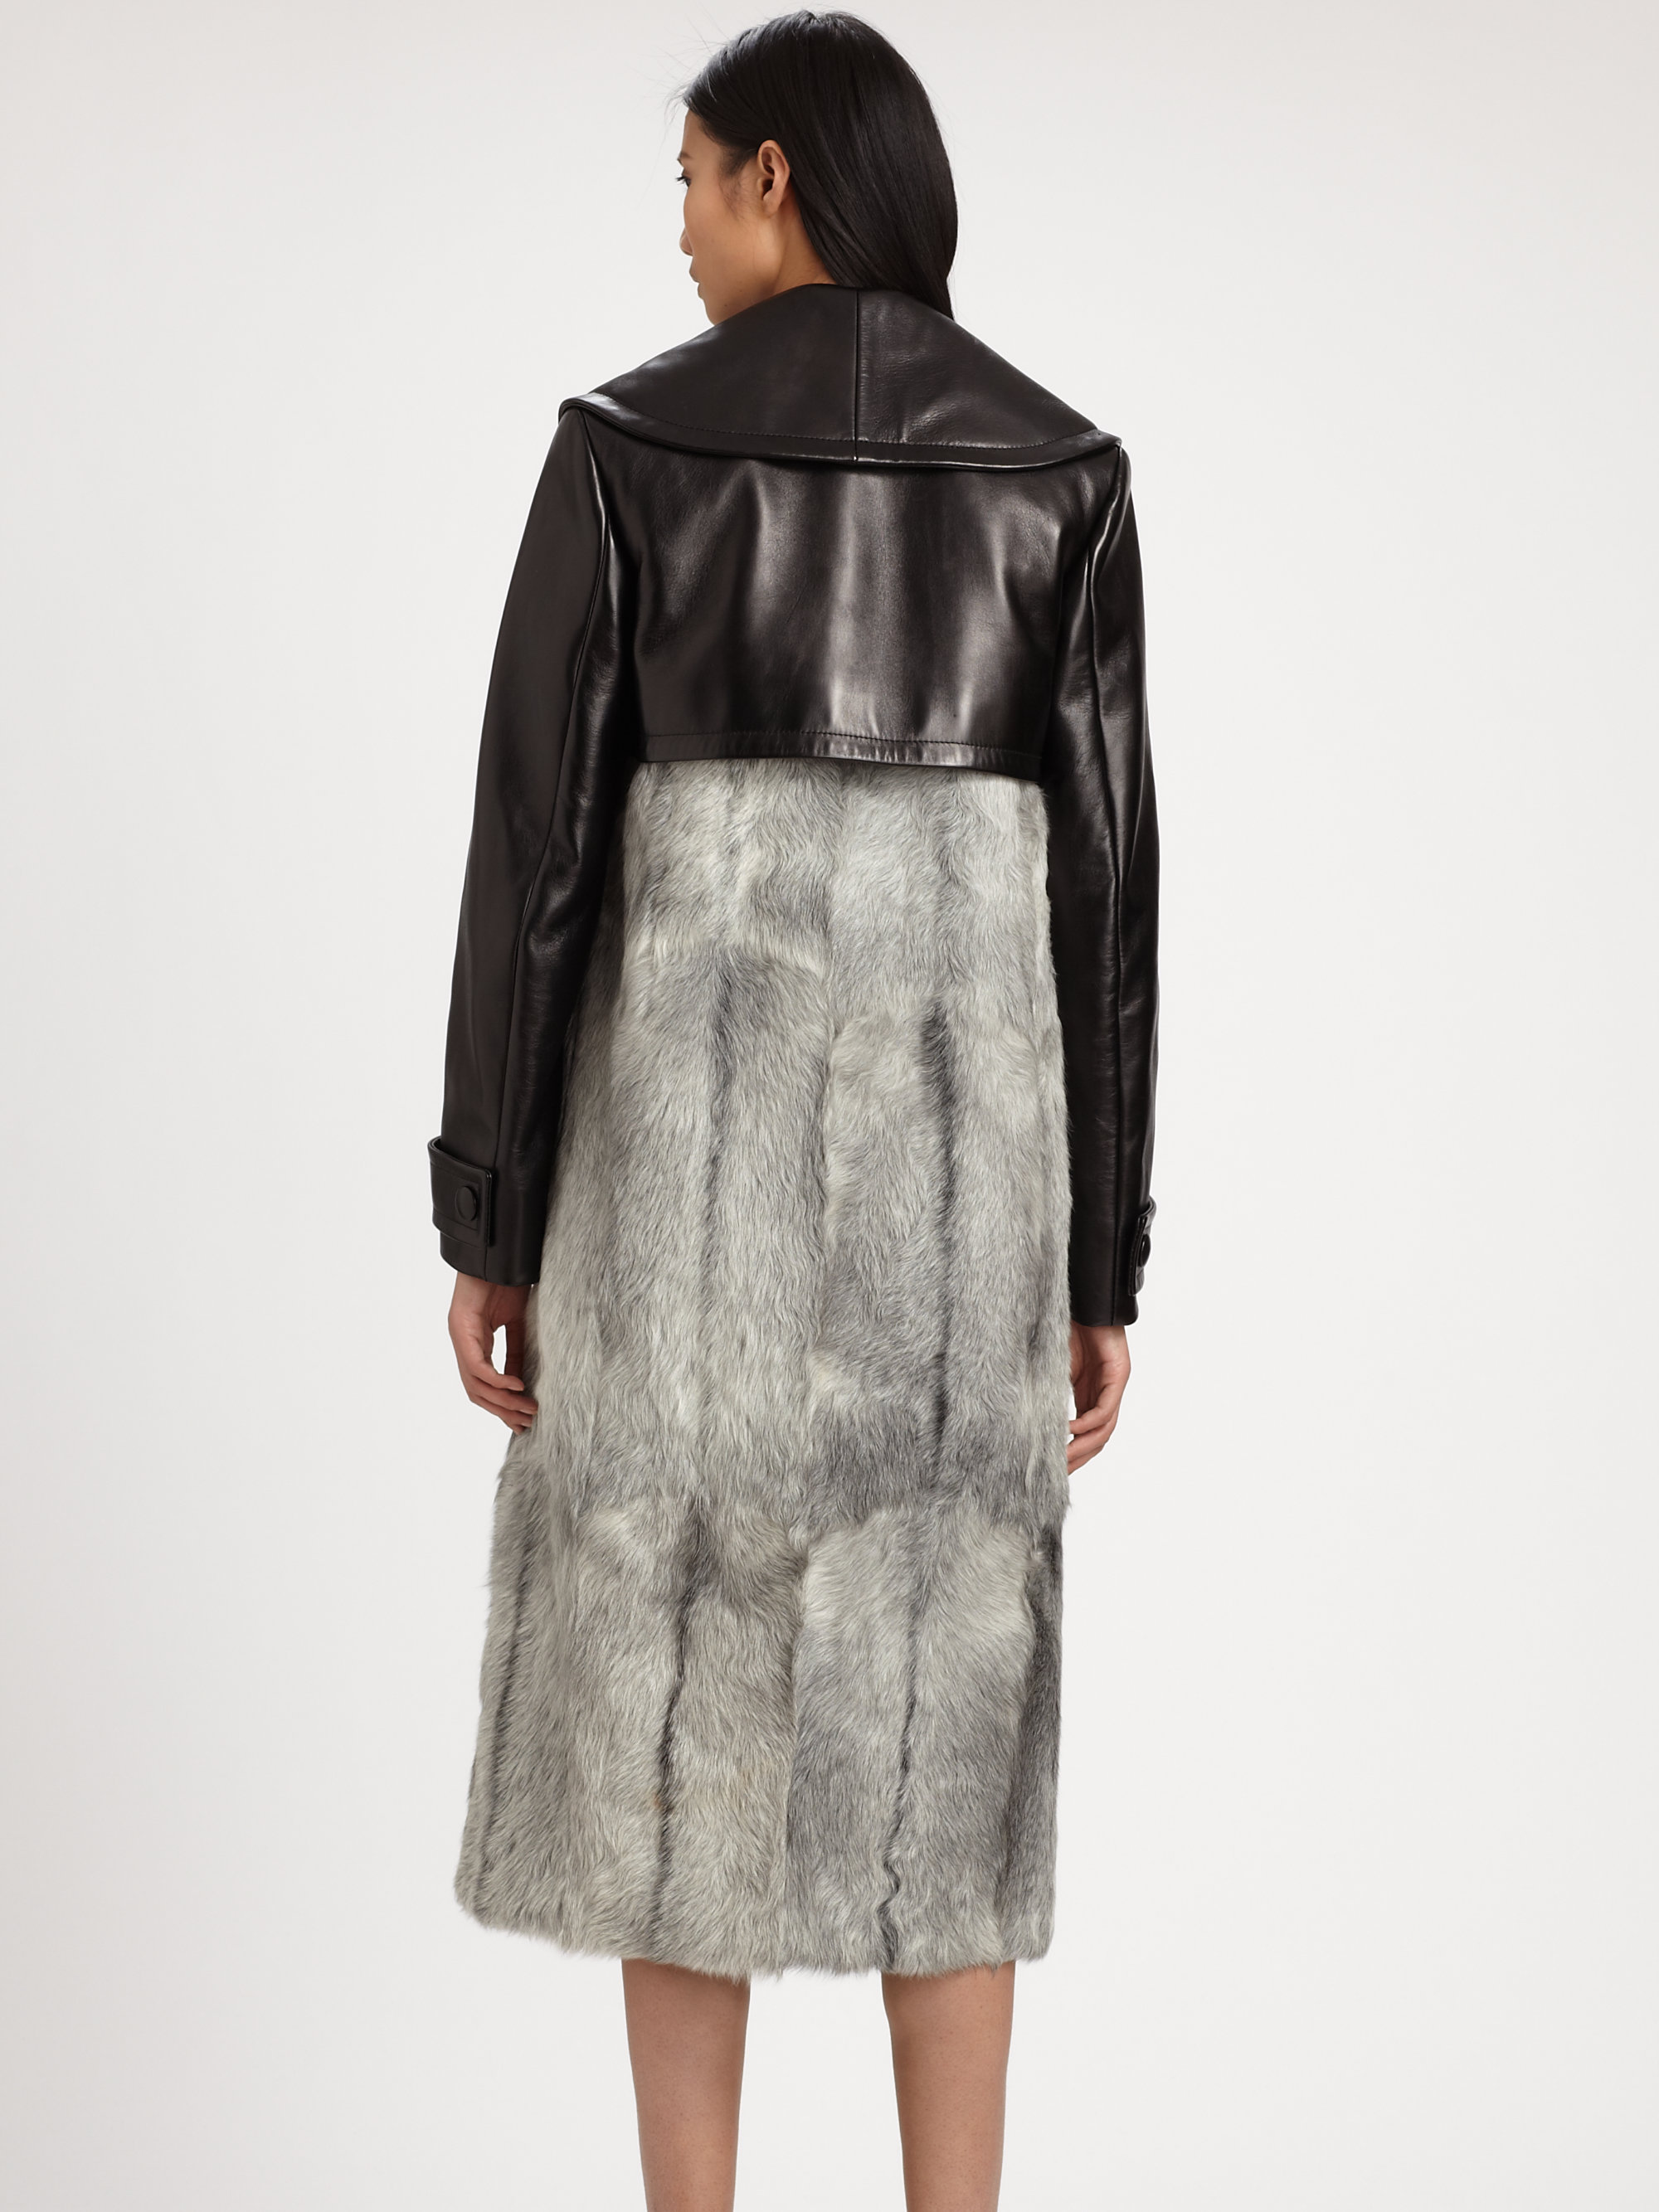 Alexander Wang Goat Fur Leather Trench Coat In Black Lyst